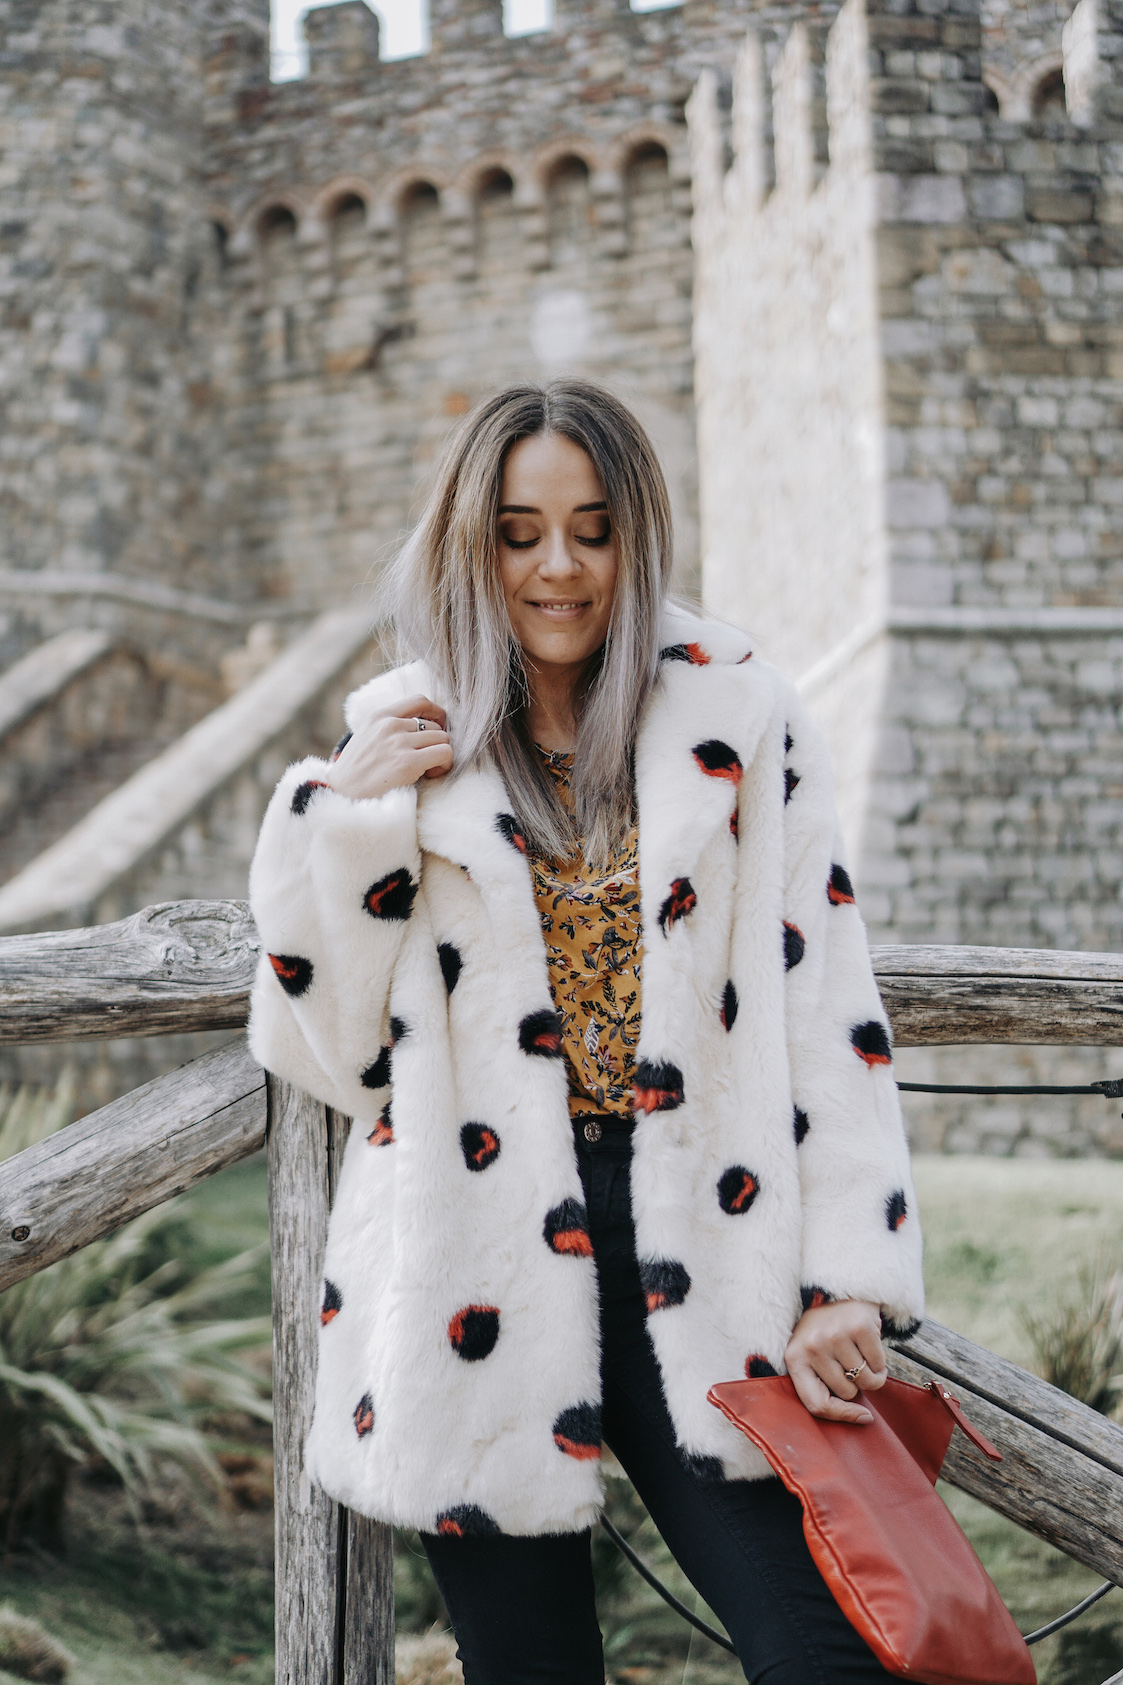 Secondhand Polka Dot Coat  // A Week Of Uncompromising Sustainable Style With Sonia Kessler From Native Styling on The Good Trade